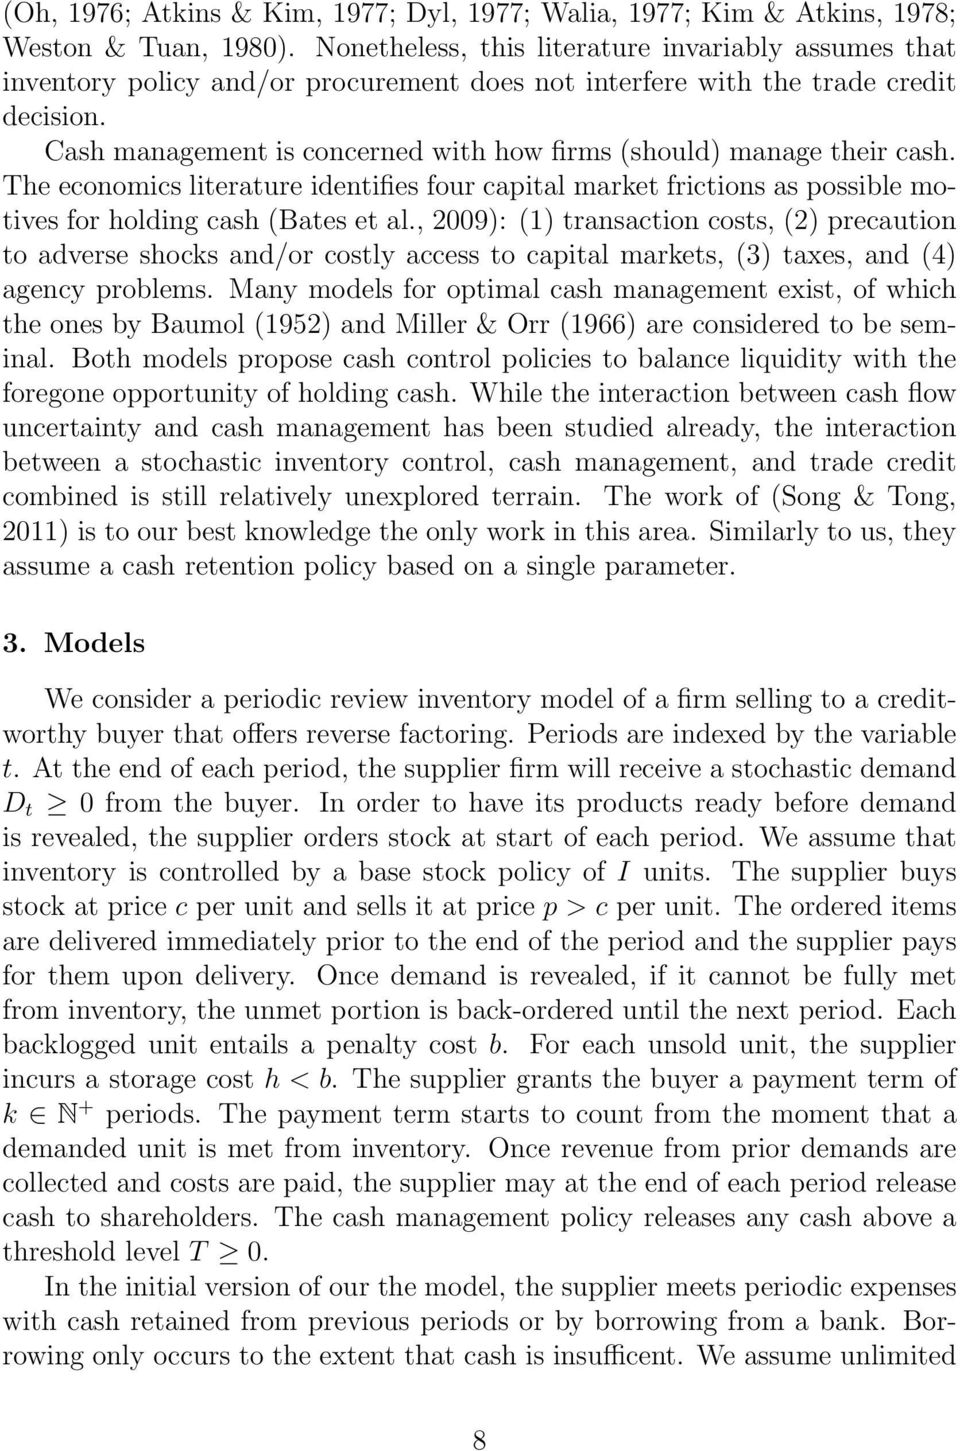 Cash management is concerned with how firms (should) manage their cash. The economics literature identifies four capital market frictions as possible motives for holding cash (Bates et al.